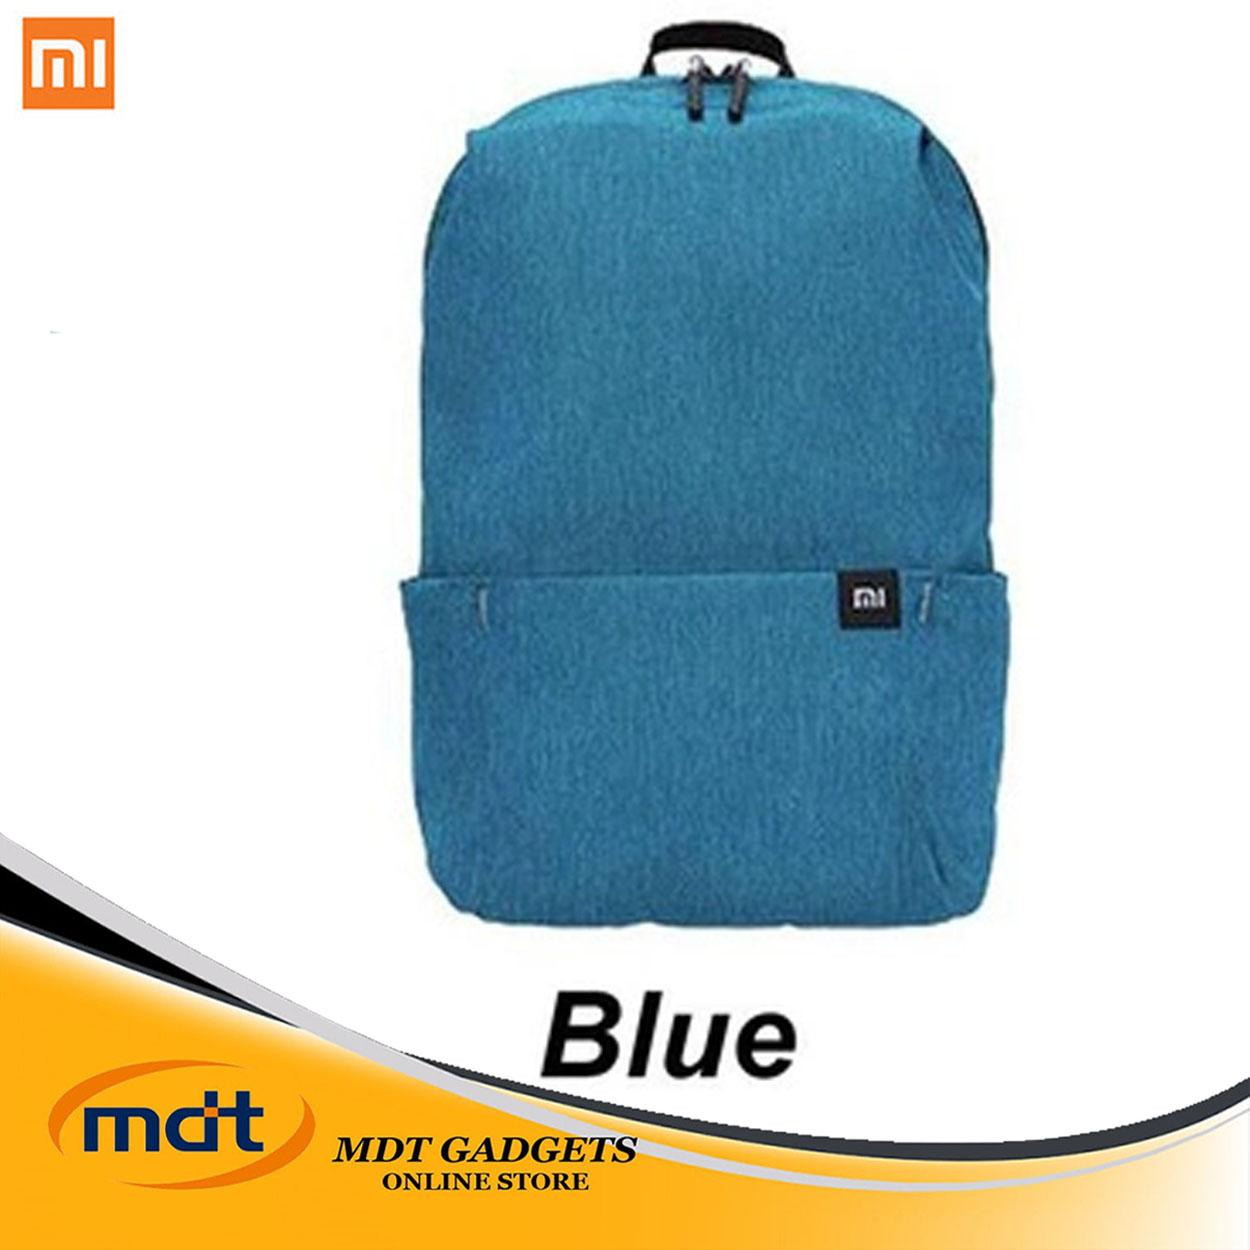 Xiaomi Mi Backpack for Men Women 10L Bag 8 Colors Lightweight Water-resistant  Backpack 165g 0239a6006acec